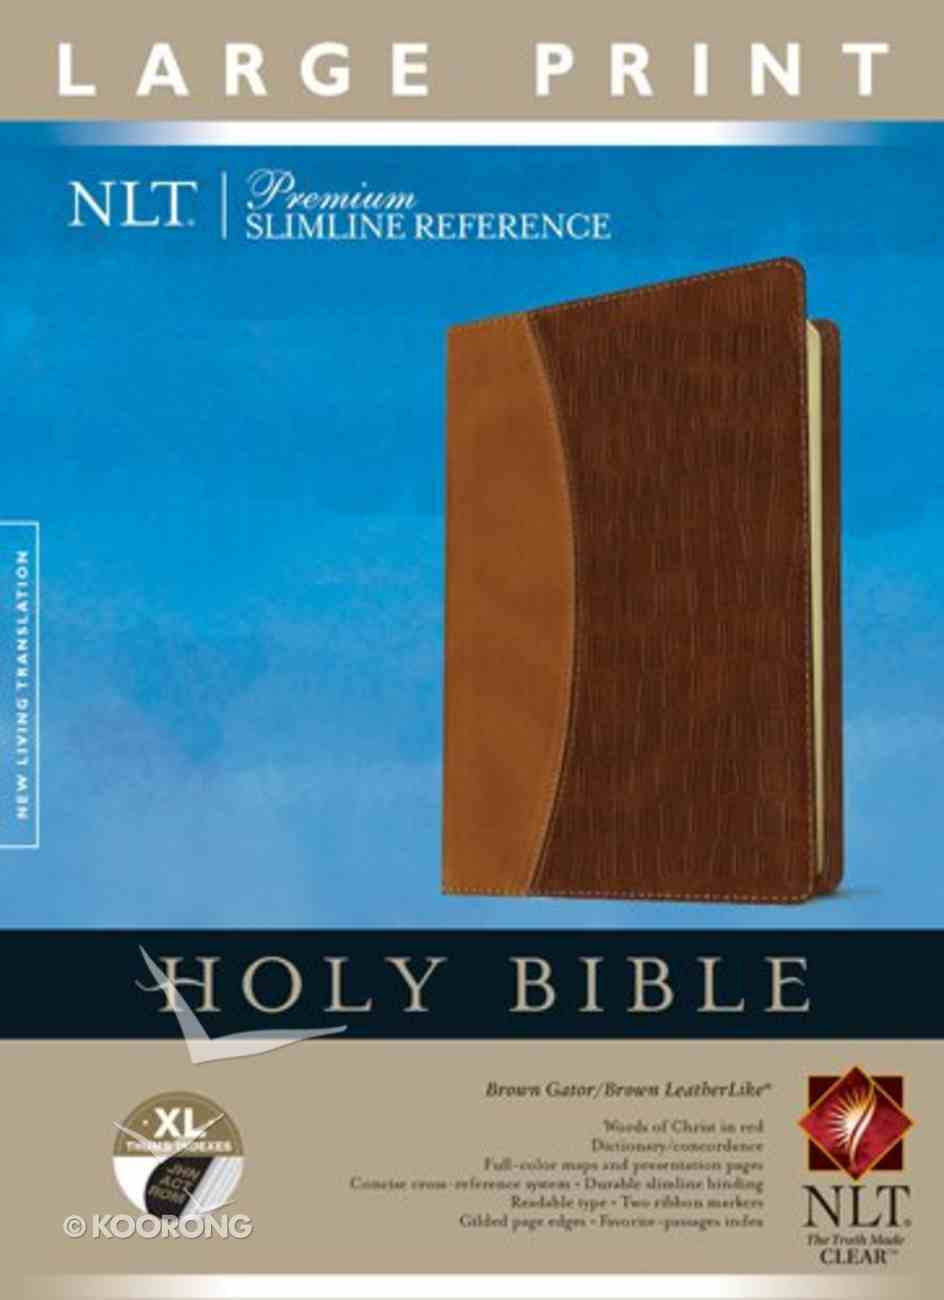 NLT Premium Slimline Reference Bible Indexed Large Print Edition Brown/Tan (Red Letter Edition) Imitation Leather